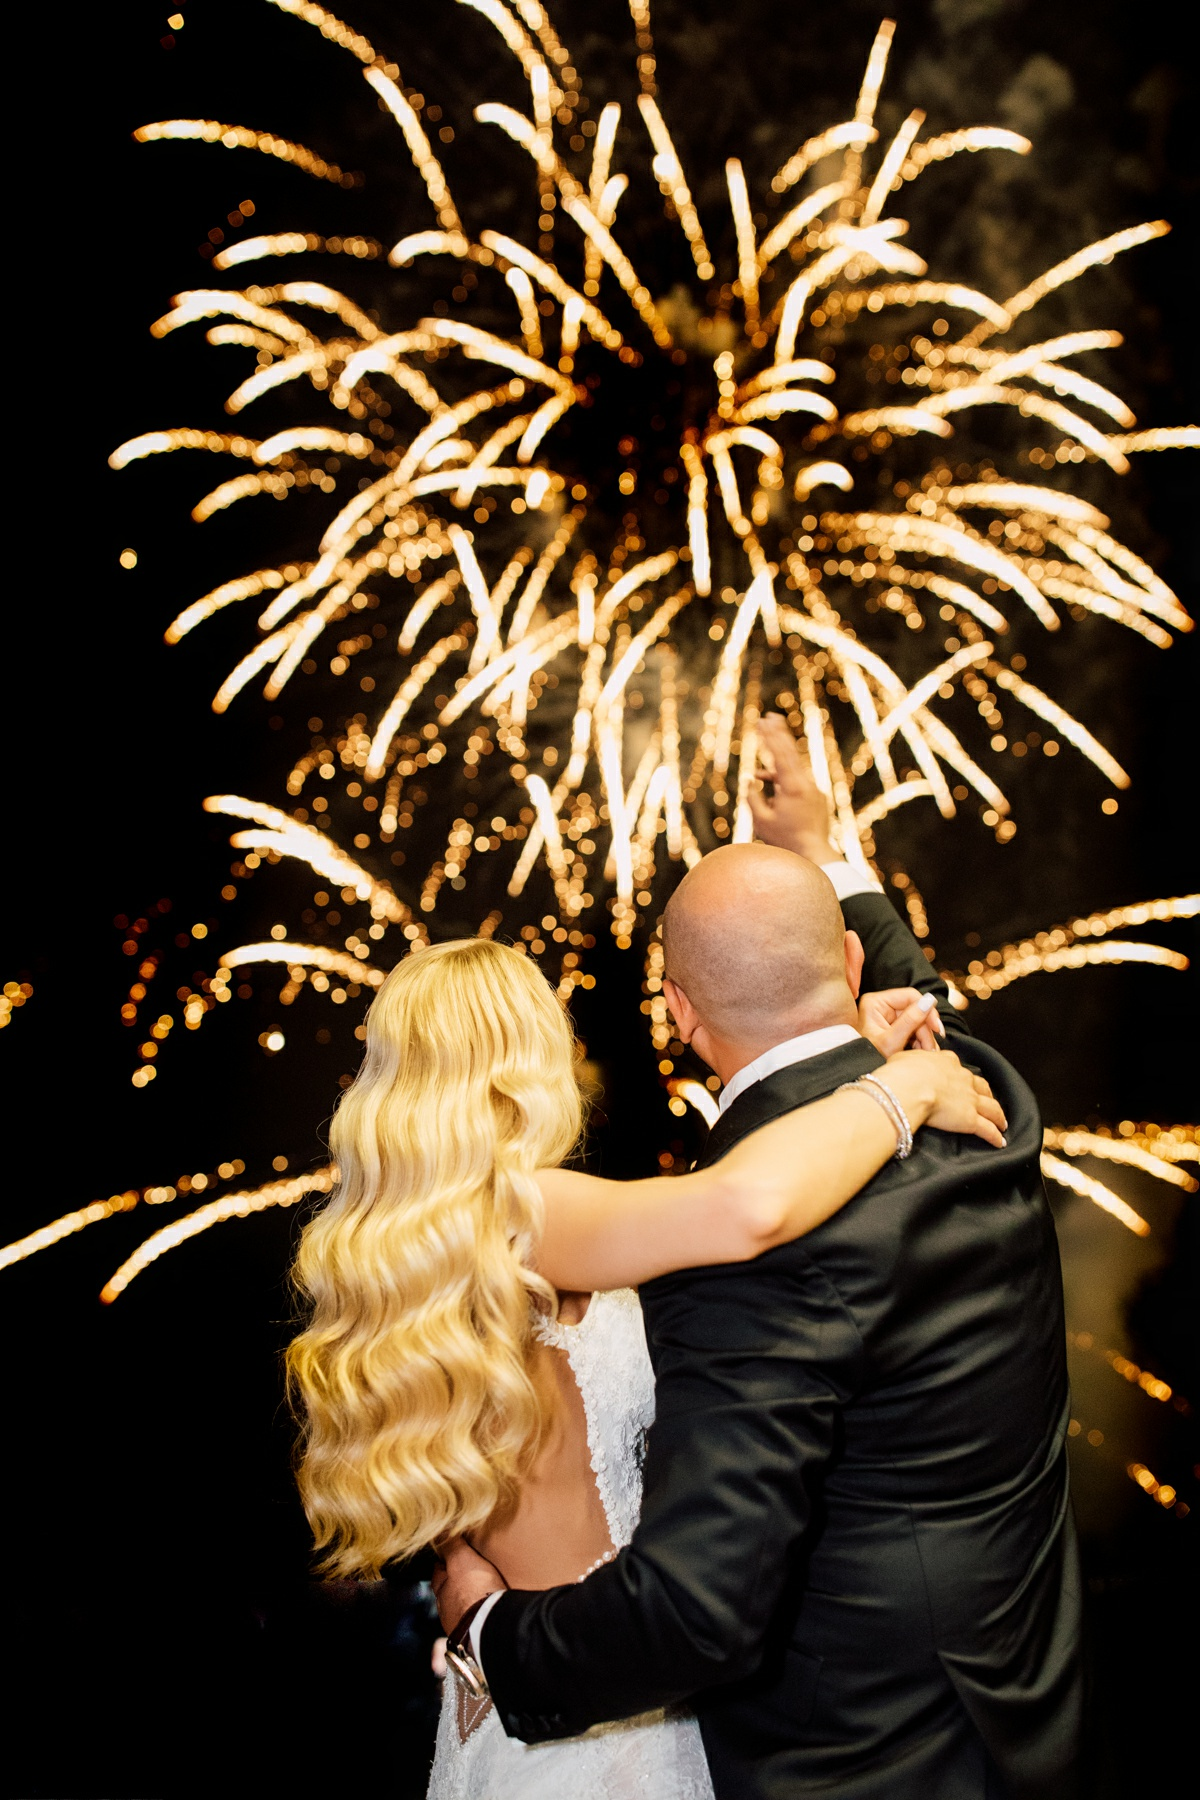 Newlyweds watching fireworks